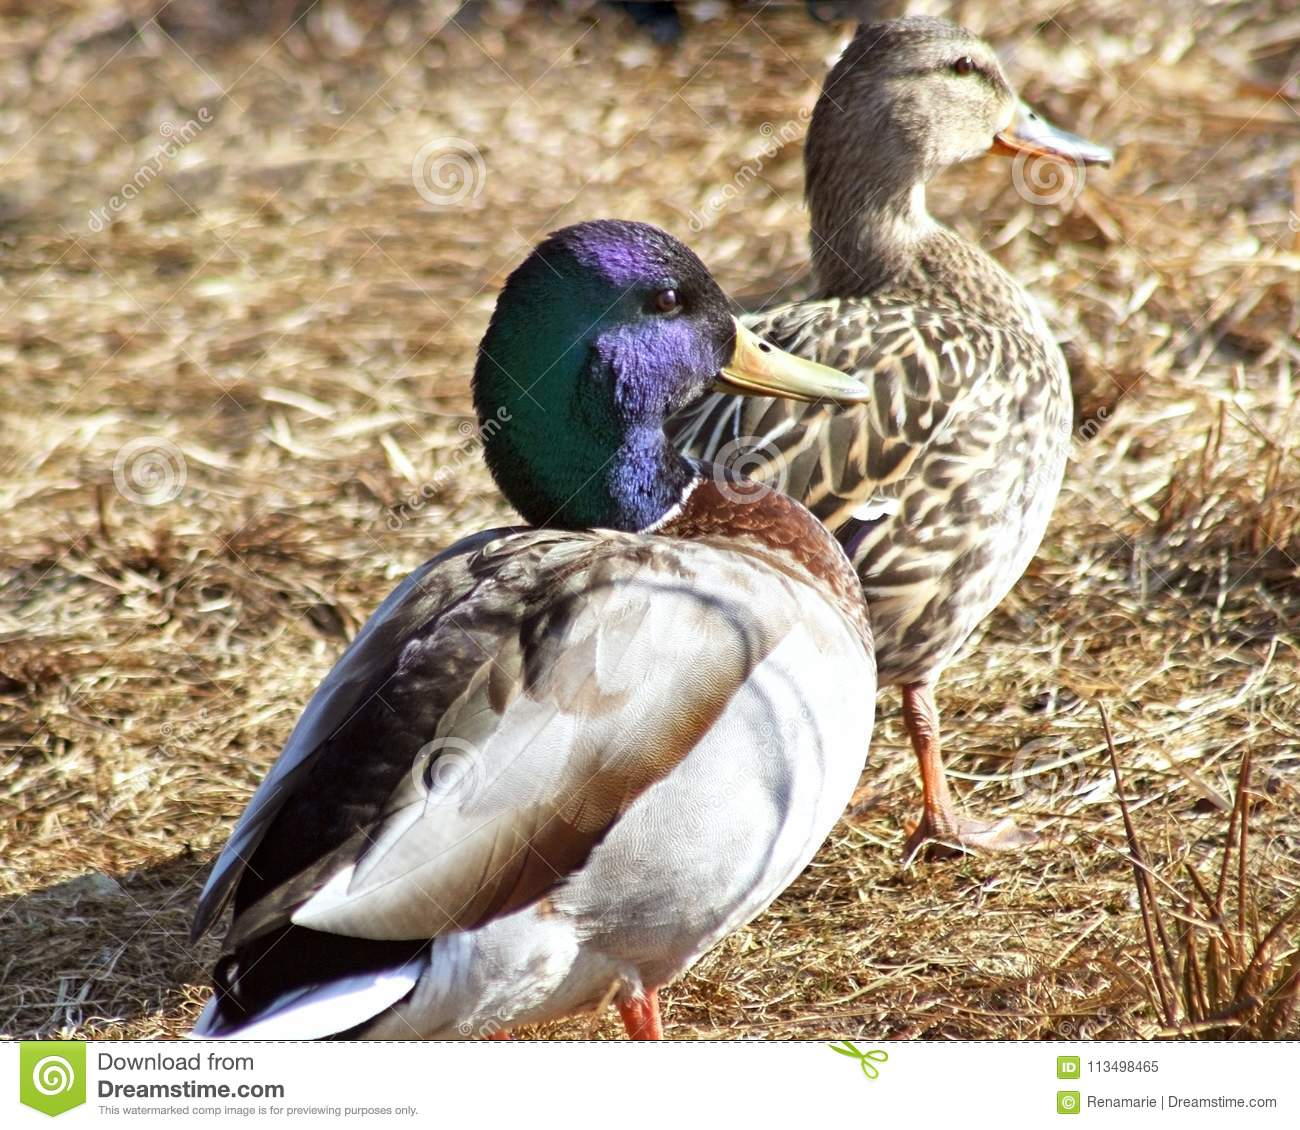 Mallard Ducks Male And Female Drake With Blue Feathered Head In Foreground Brown Hen Is Walking Front